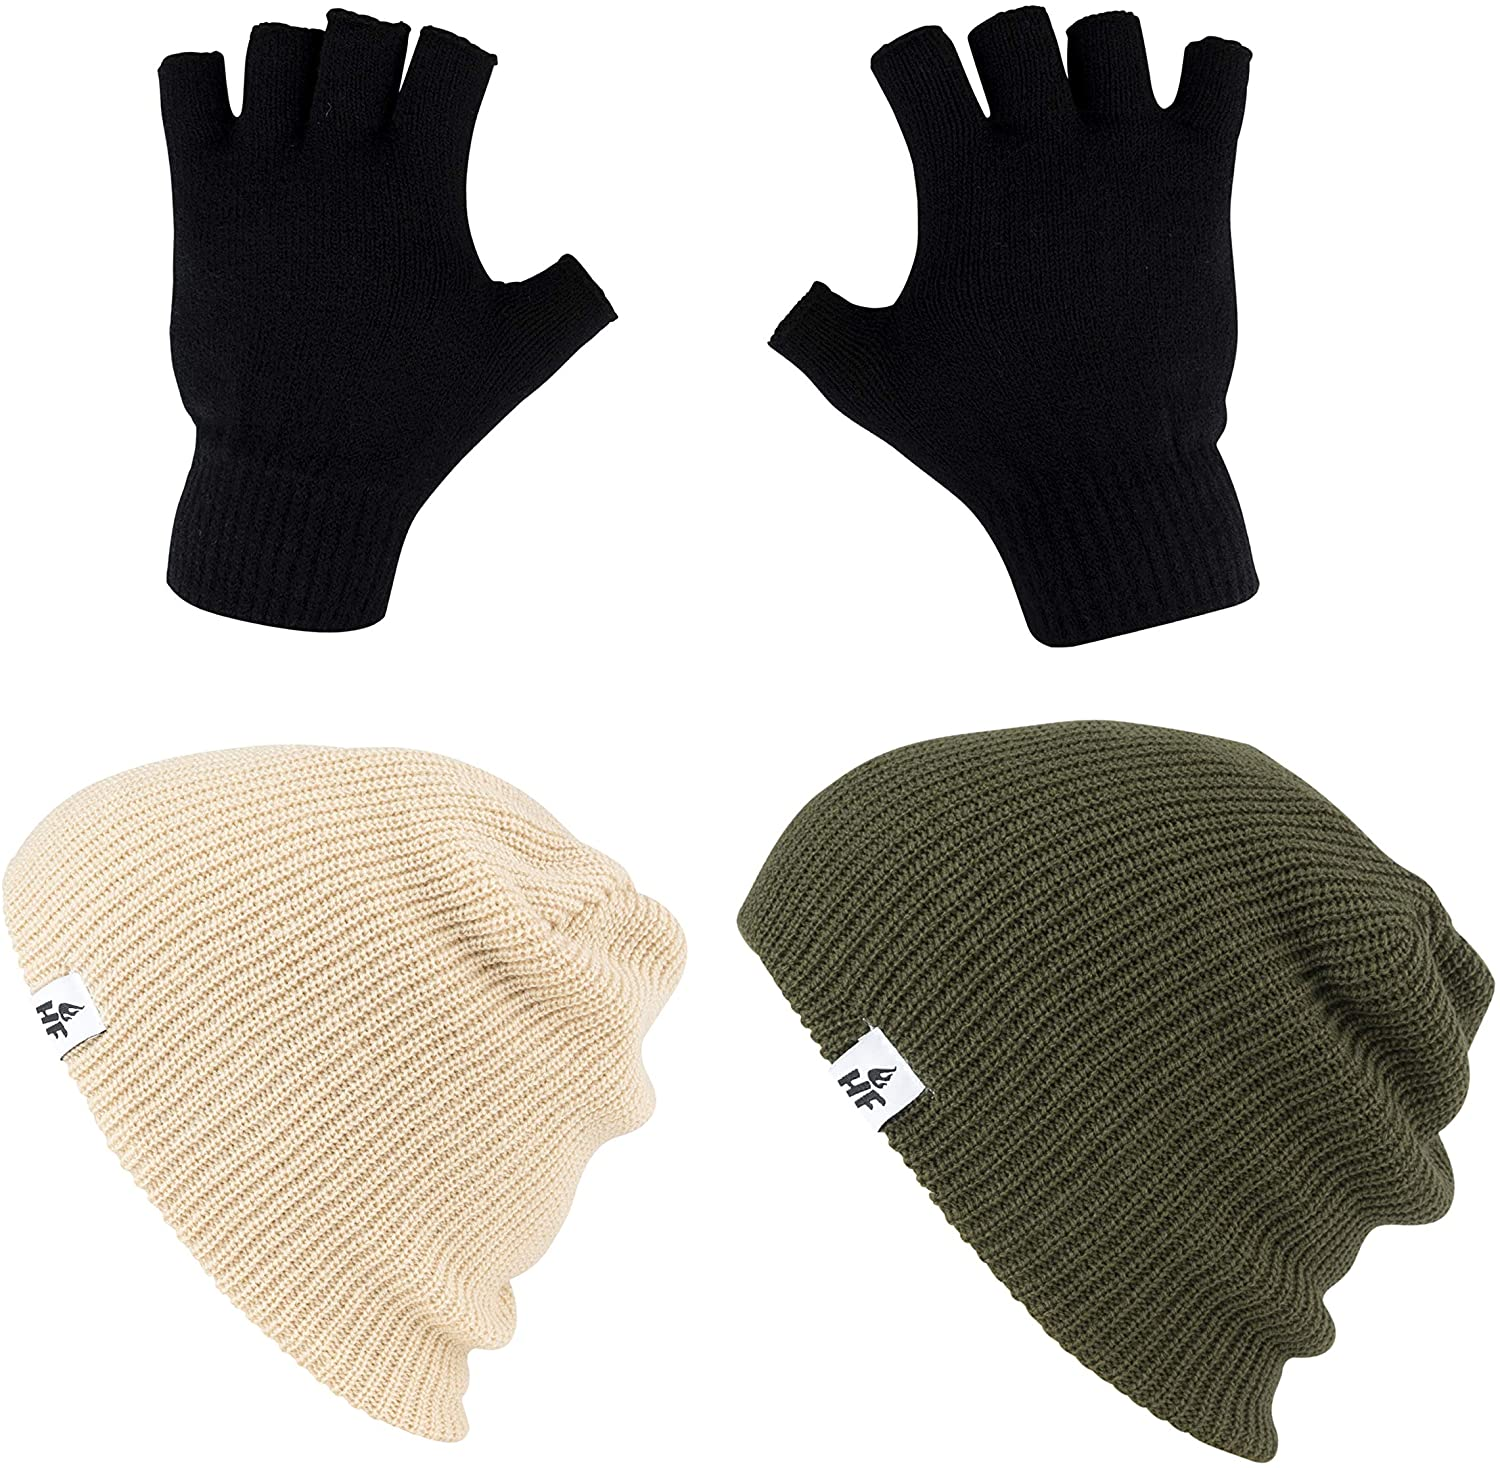 HOT FEET Winter Beanies and Gloves | Warm Knit Men's and Women's Snow Hats and Gloves/Caps | Unisex Pack/Set of 3